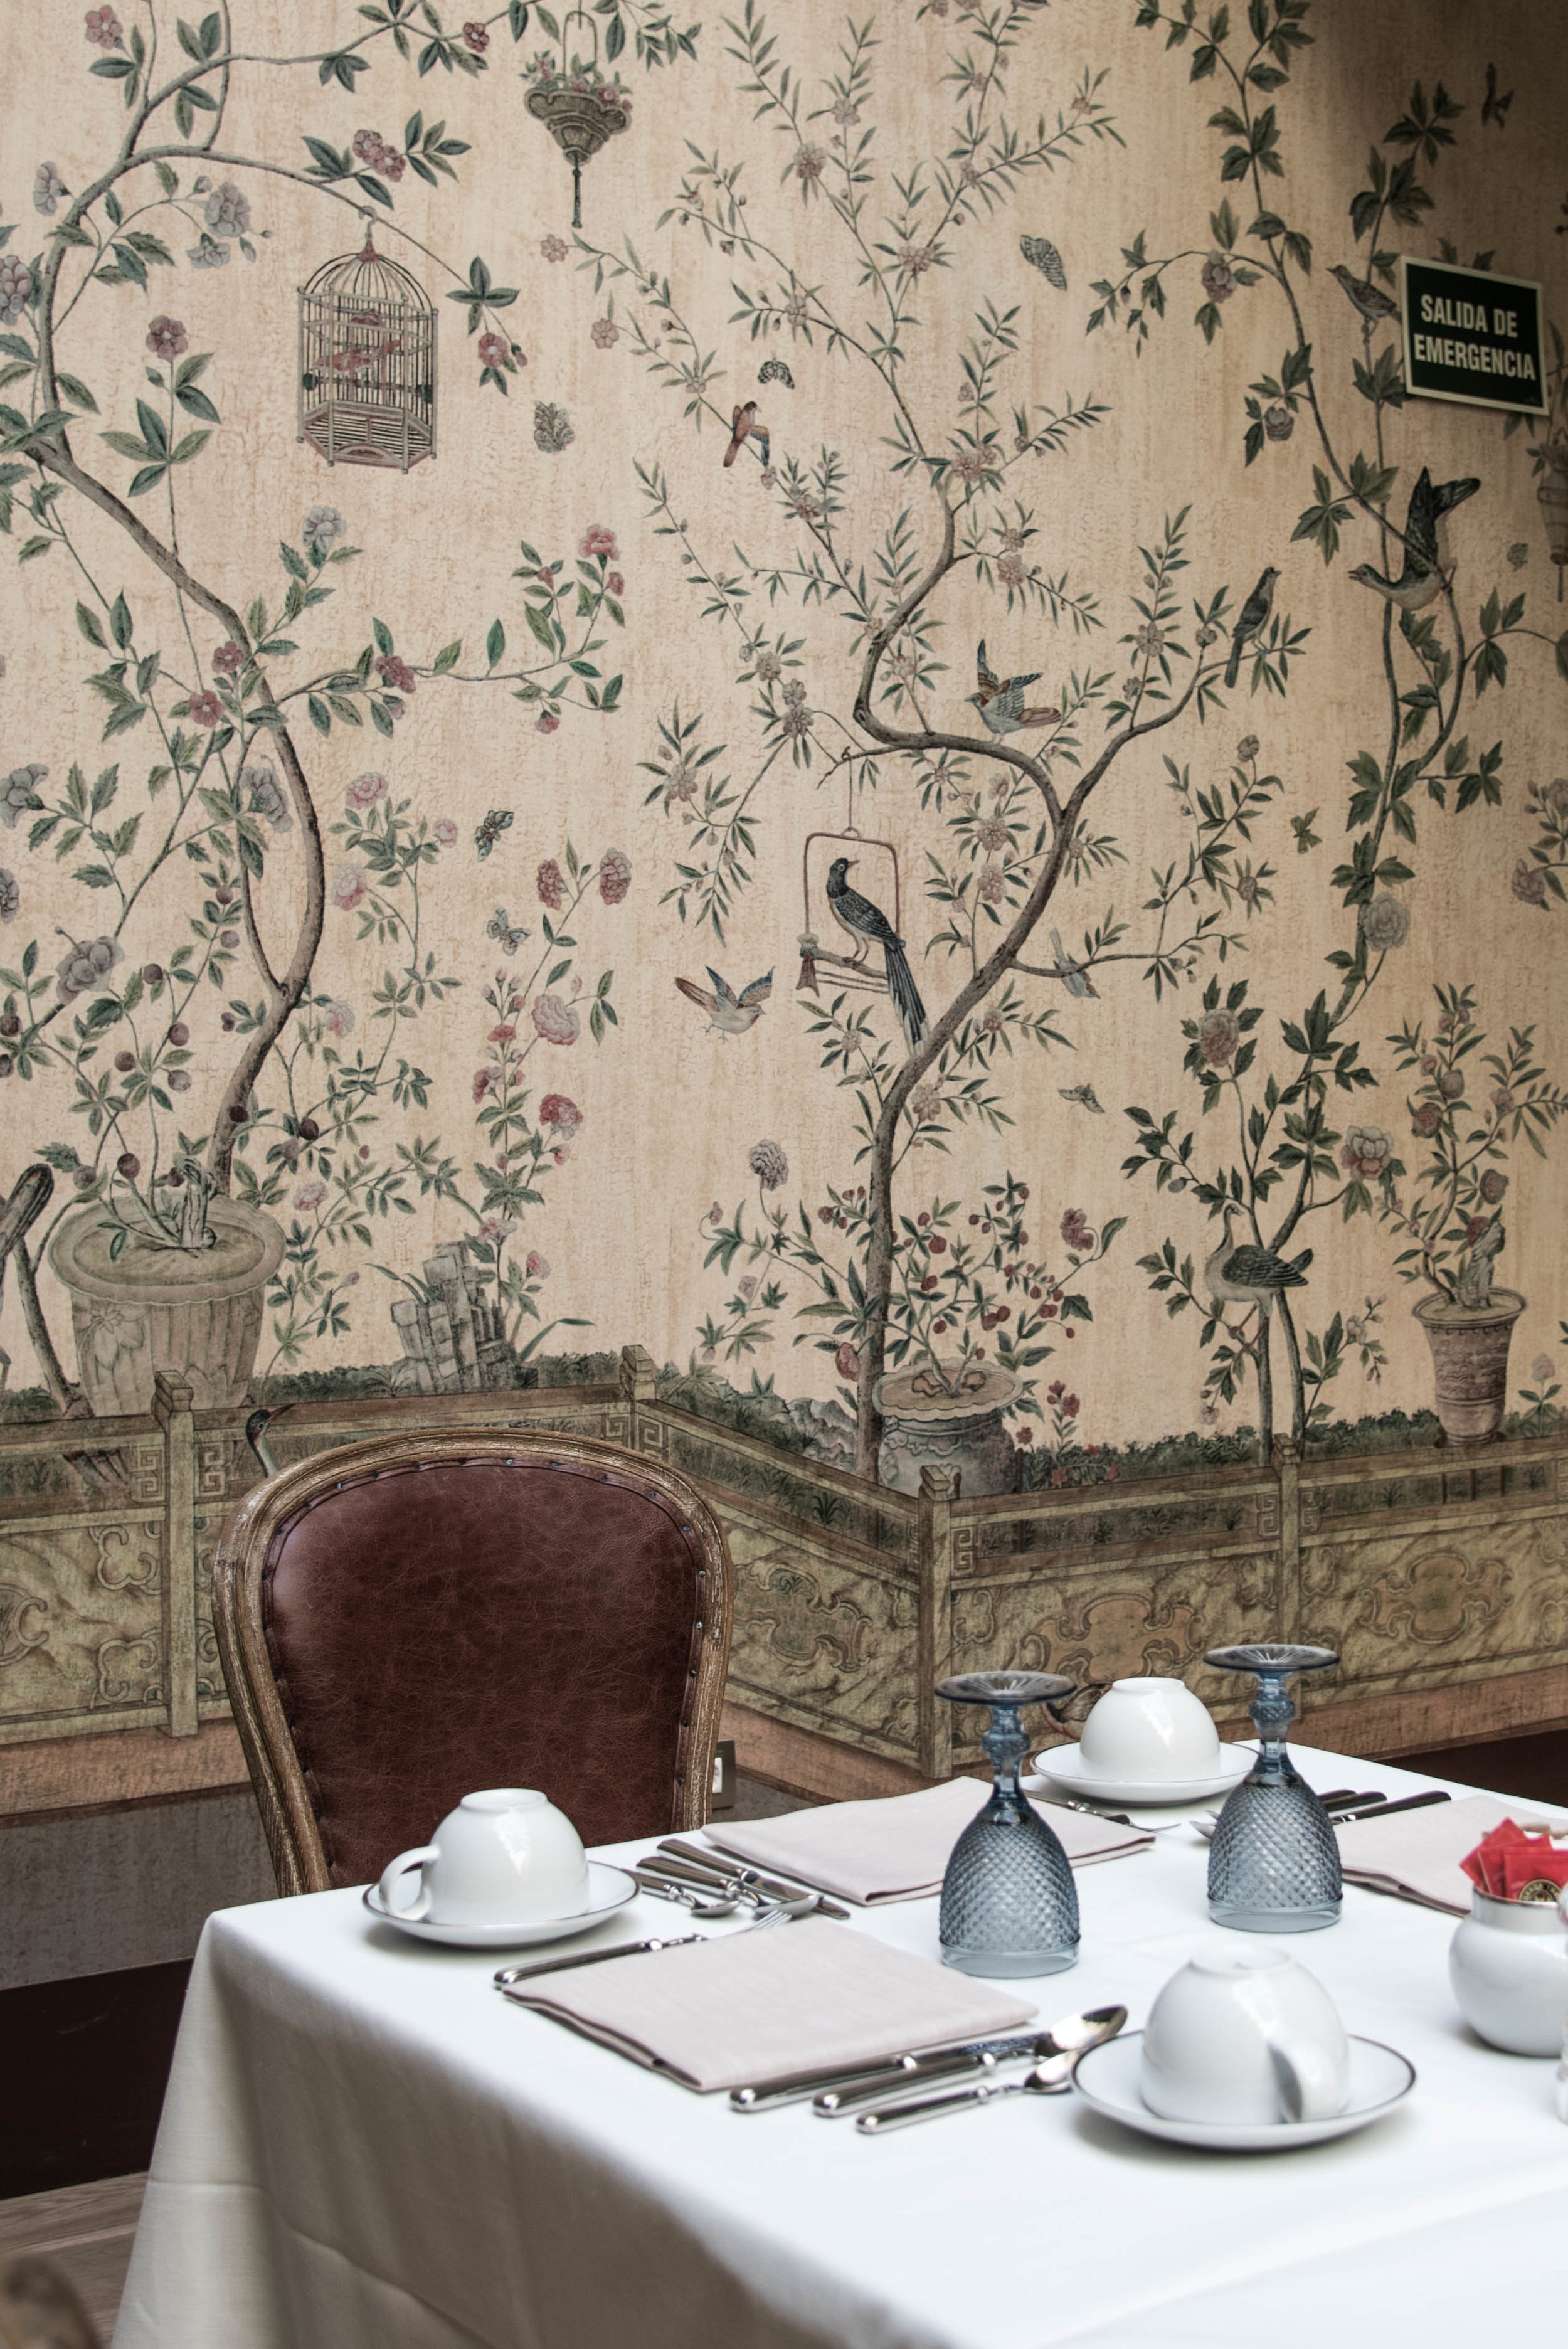 ROSE & IVY Journal Escape to Madrid and Stay At Hotel Urso